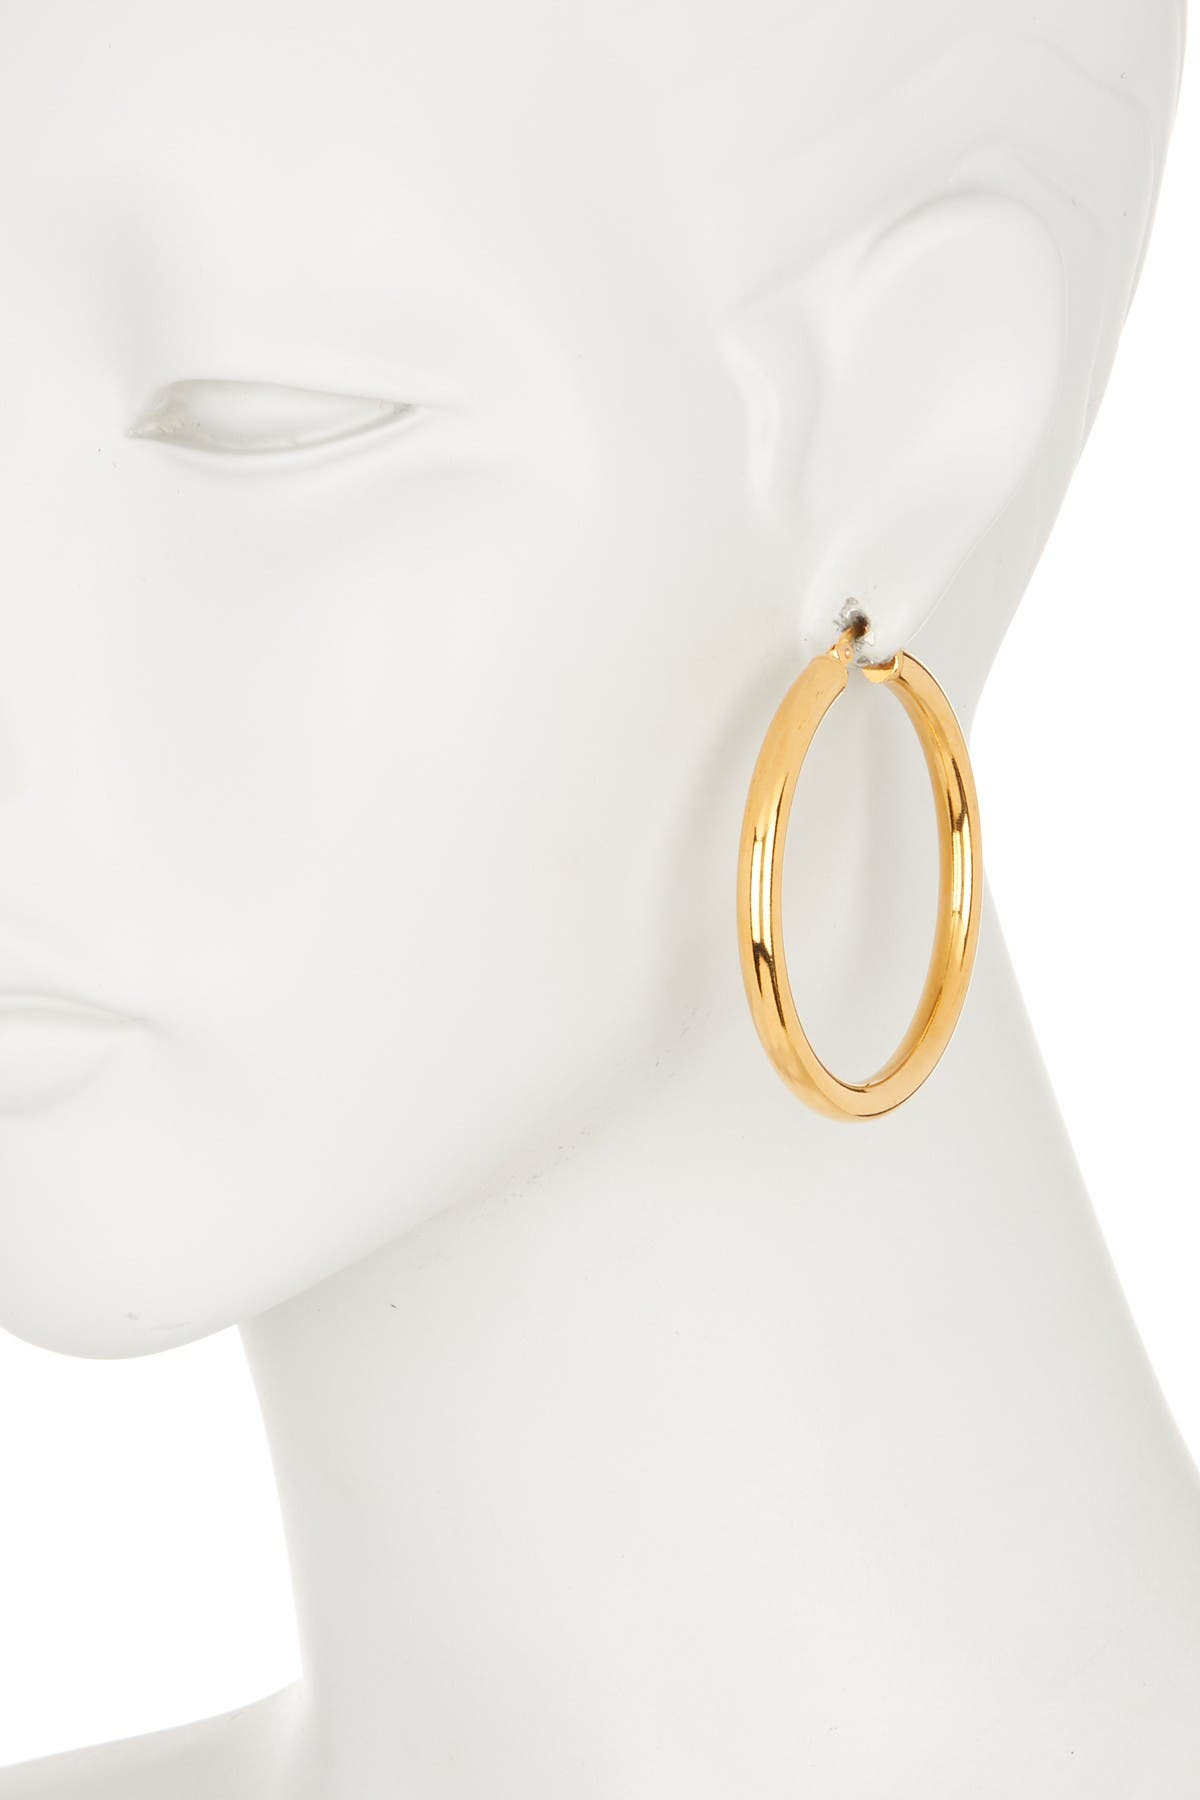 Image of HMY Jewelry Thick Hoop Earrings 40mm